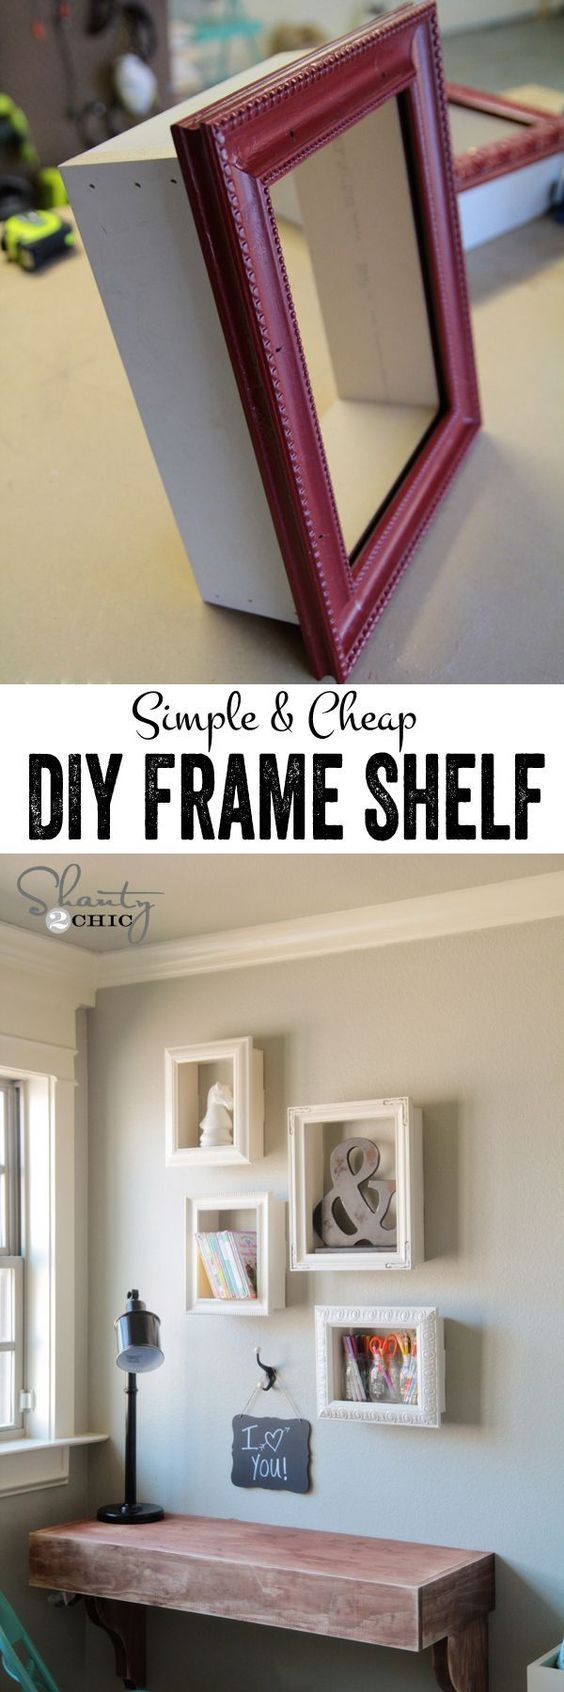 111 World\'s Most Loved DIY Projects | Wall decor | Pinterest ...